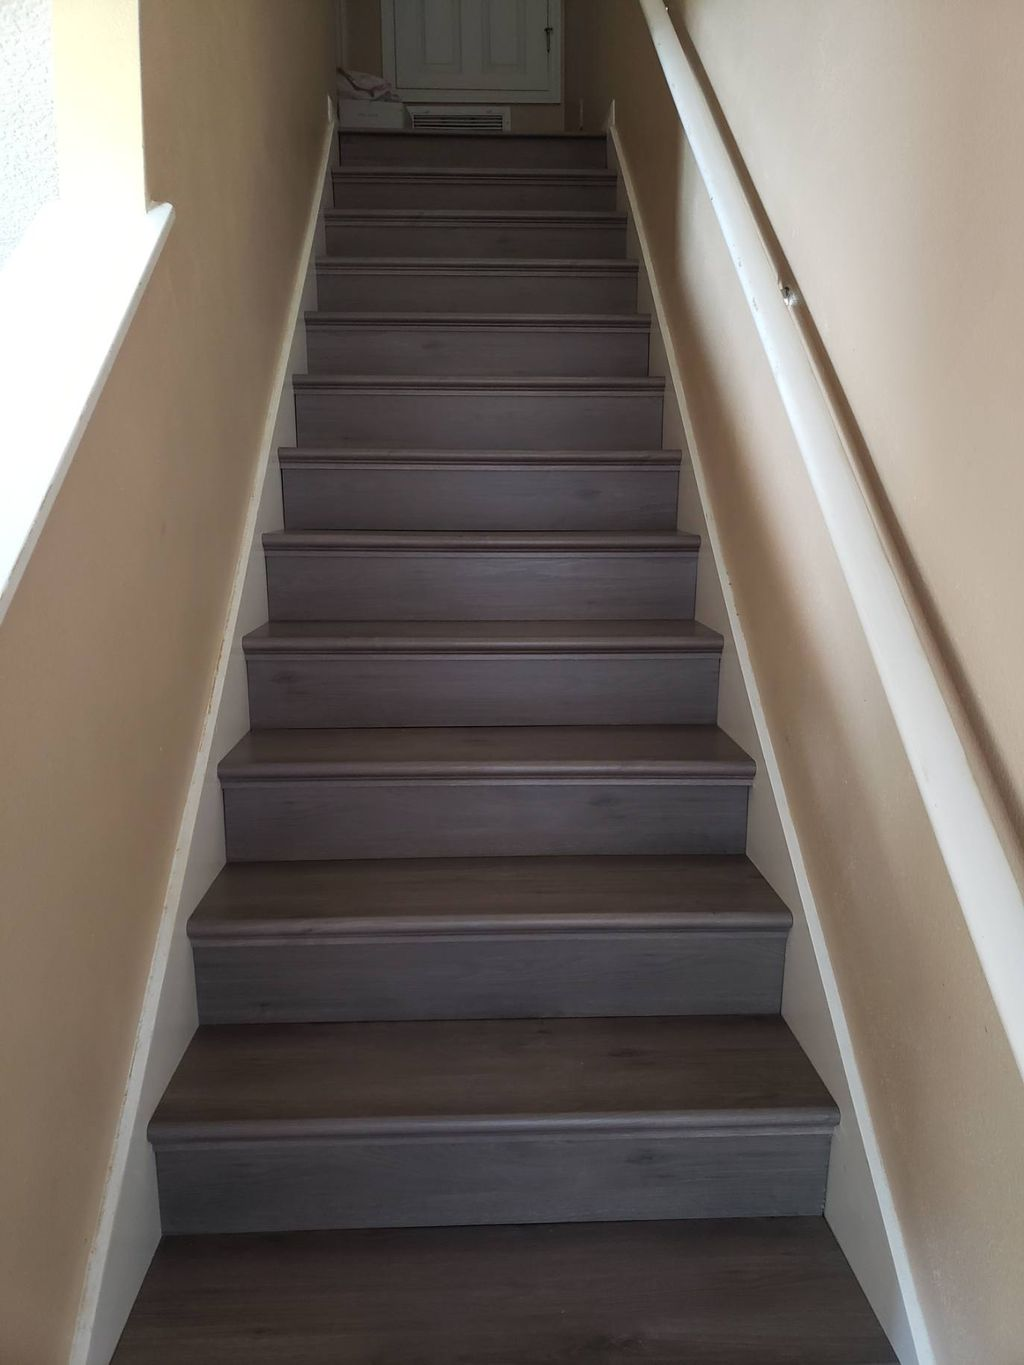 Luxury vinyl plank stairs with tread and matching risers